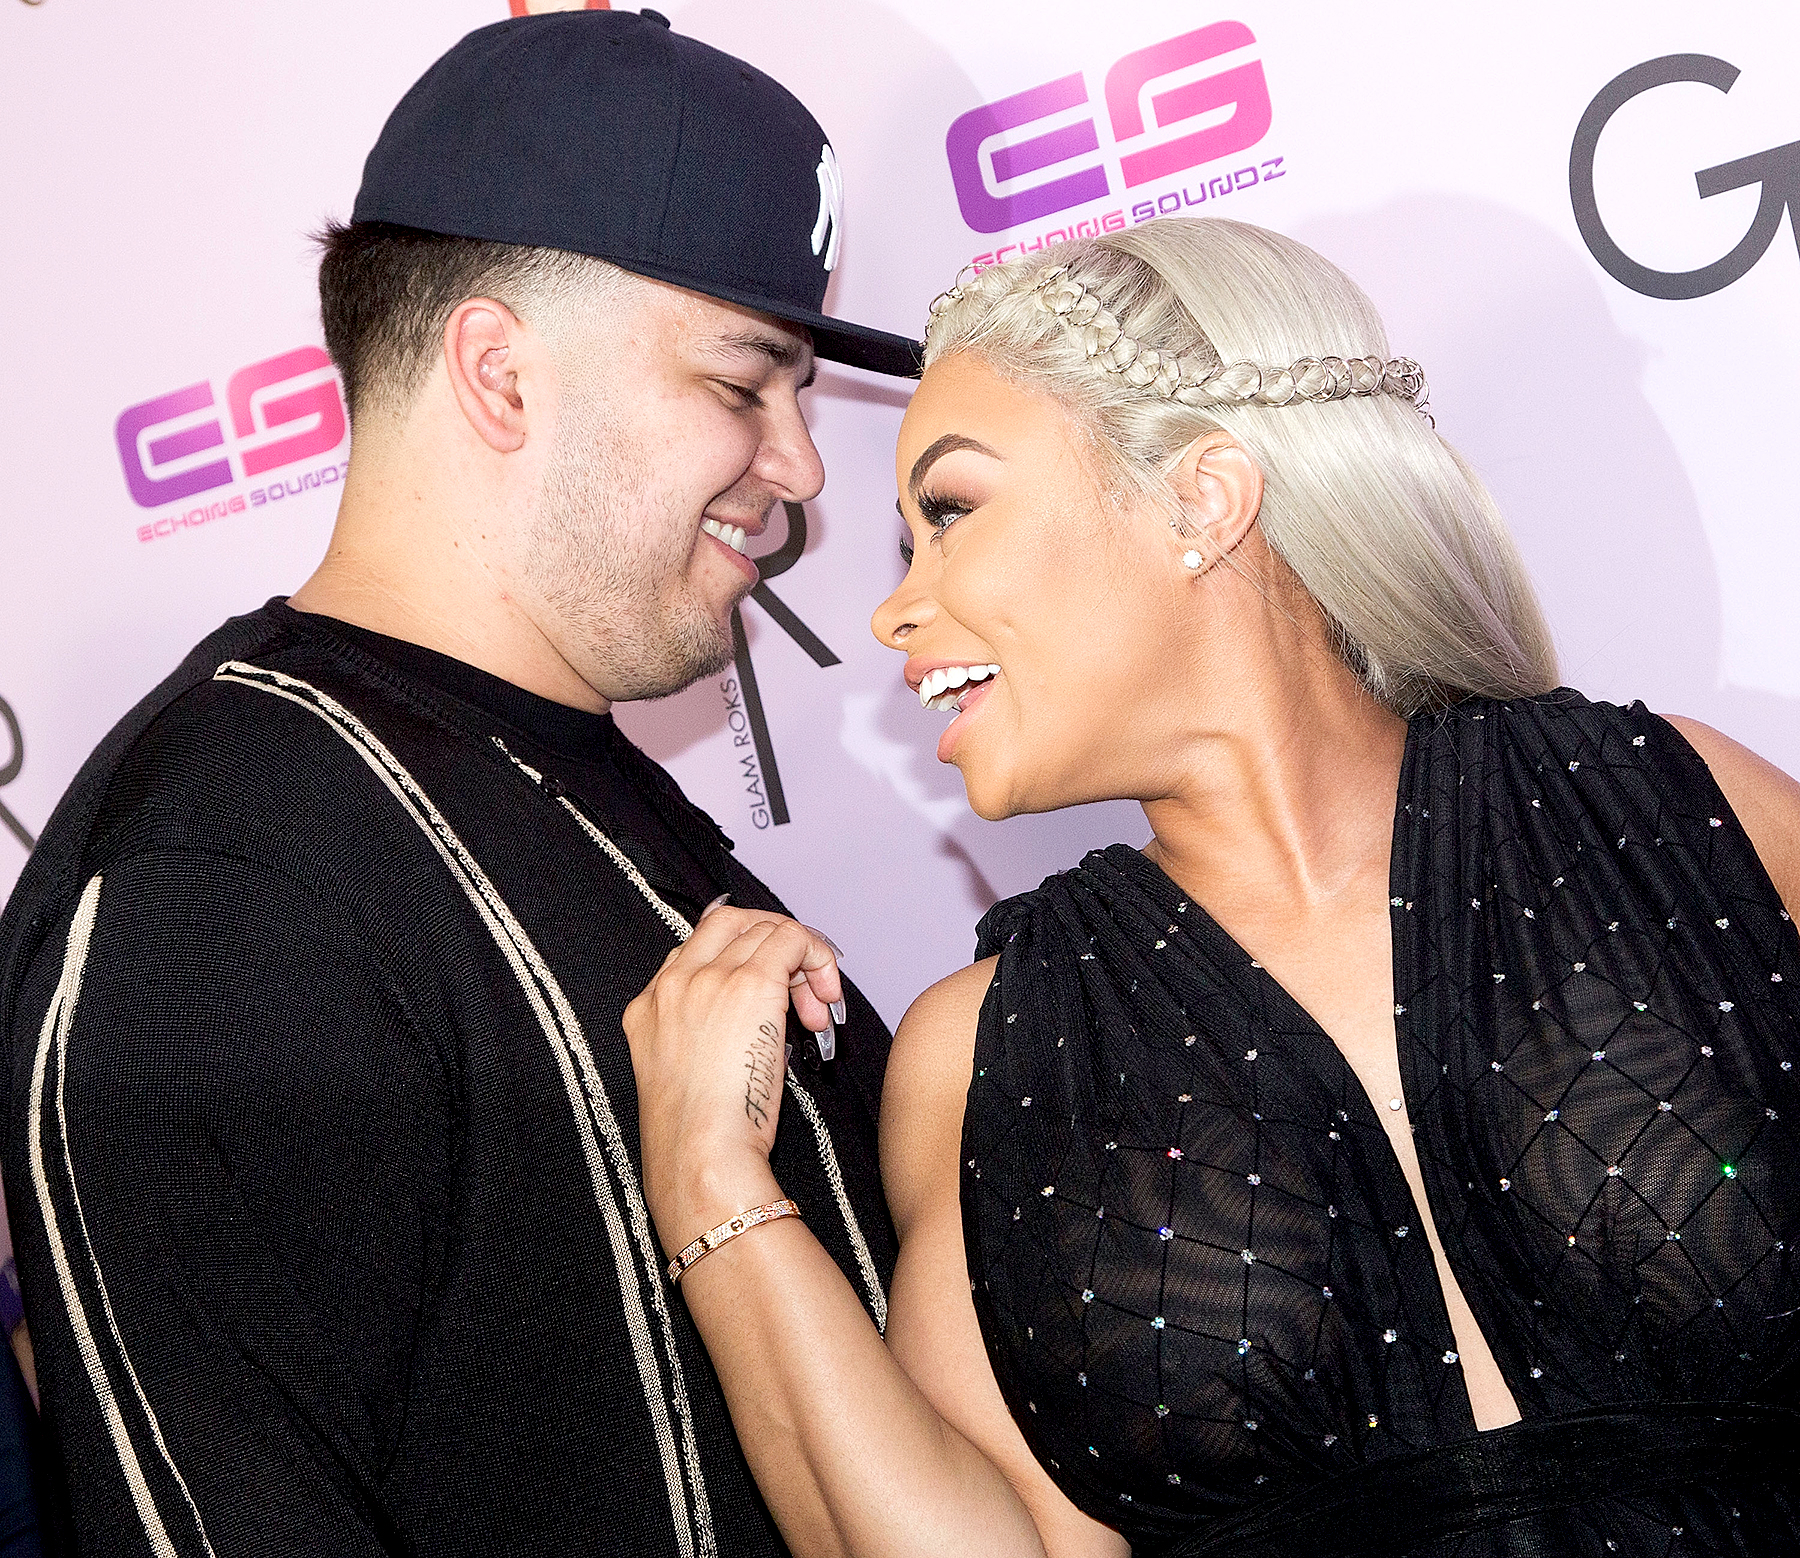 Blac Chyna and Rob Kardashian arrive for her Blac Chyna's birthday celebration and unveiling of her